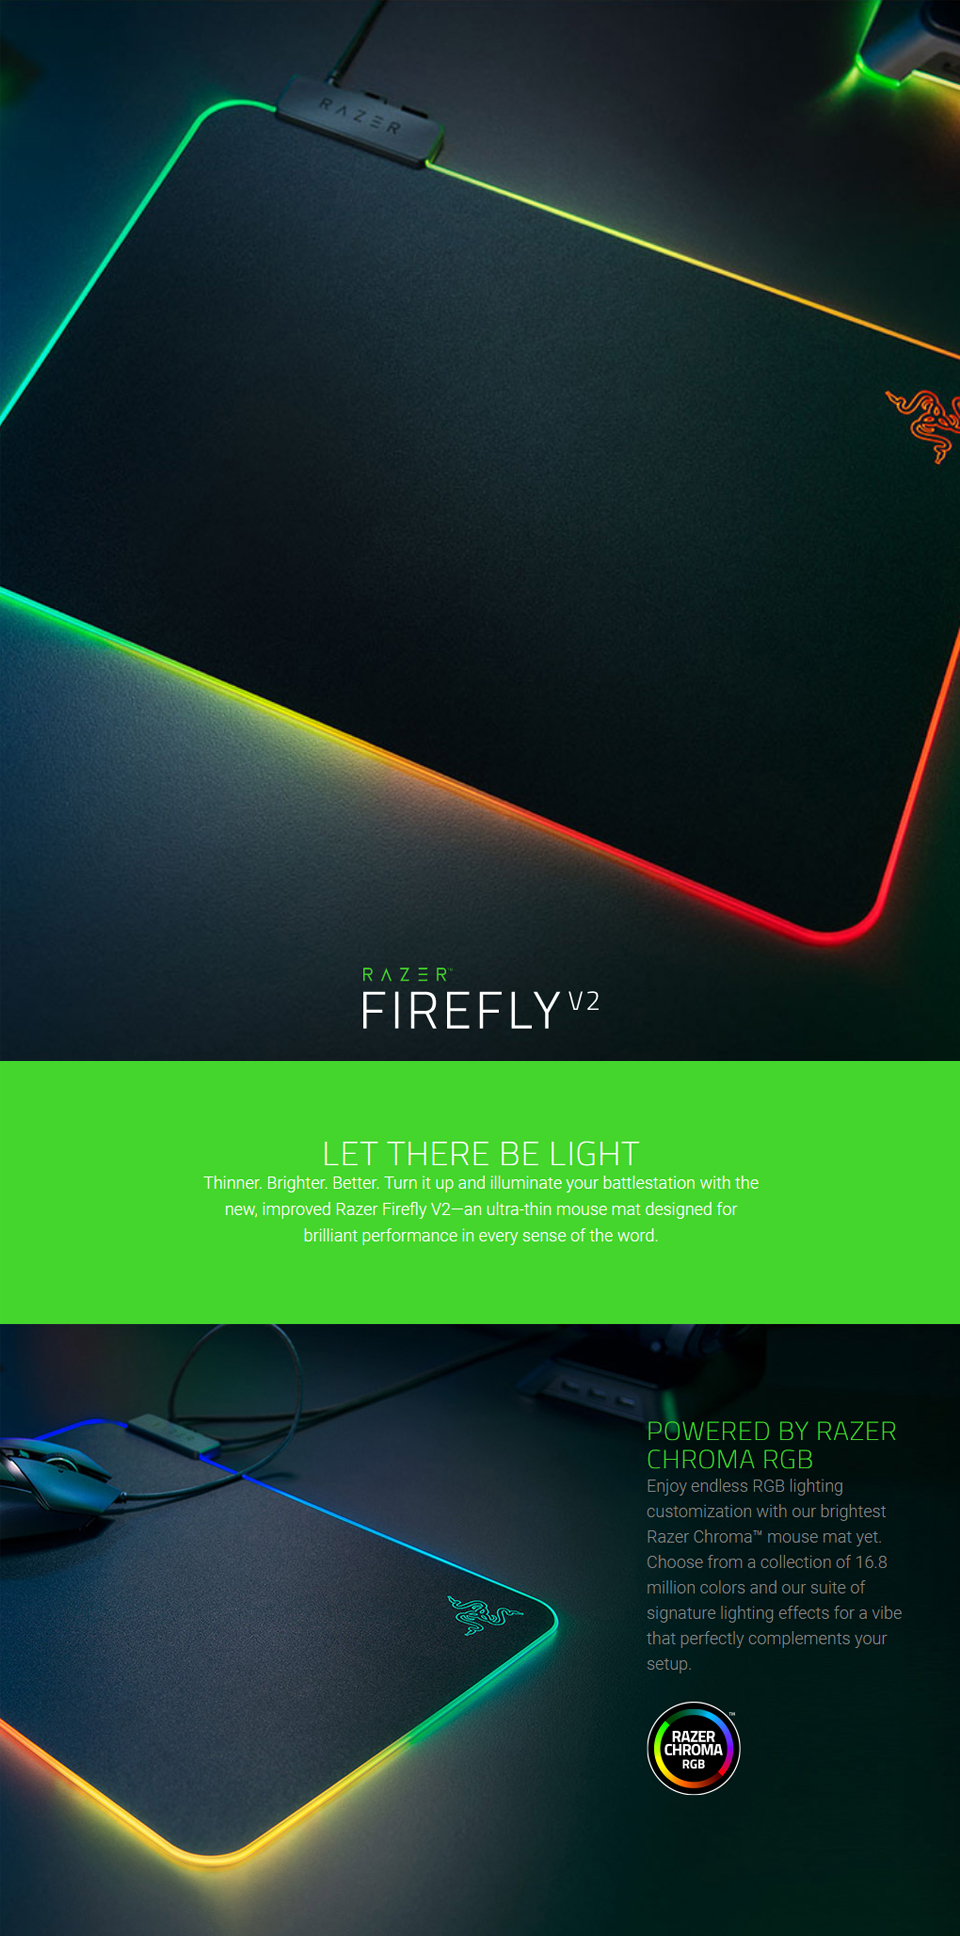 Razer Firefly V2 Chroma Hard Surface Mouse Pad features